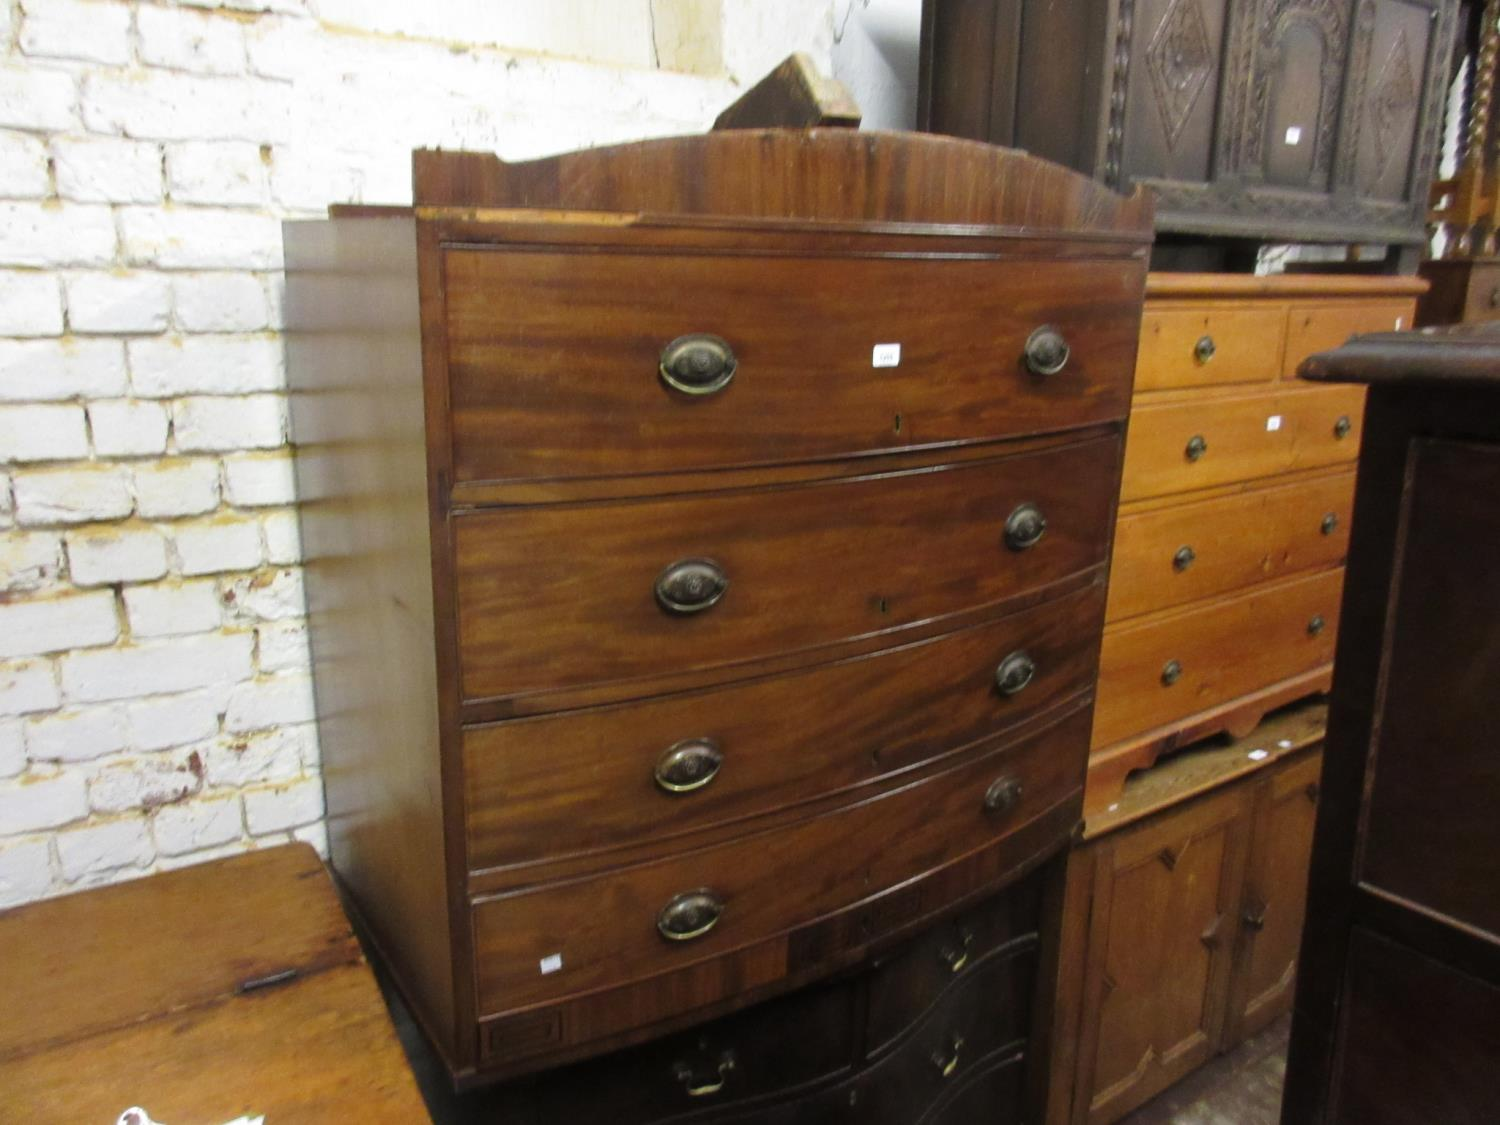 Regency mahogany black line inlaid bow fronted chest of four long drawers with oval brass handles,